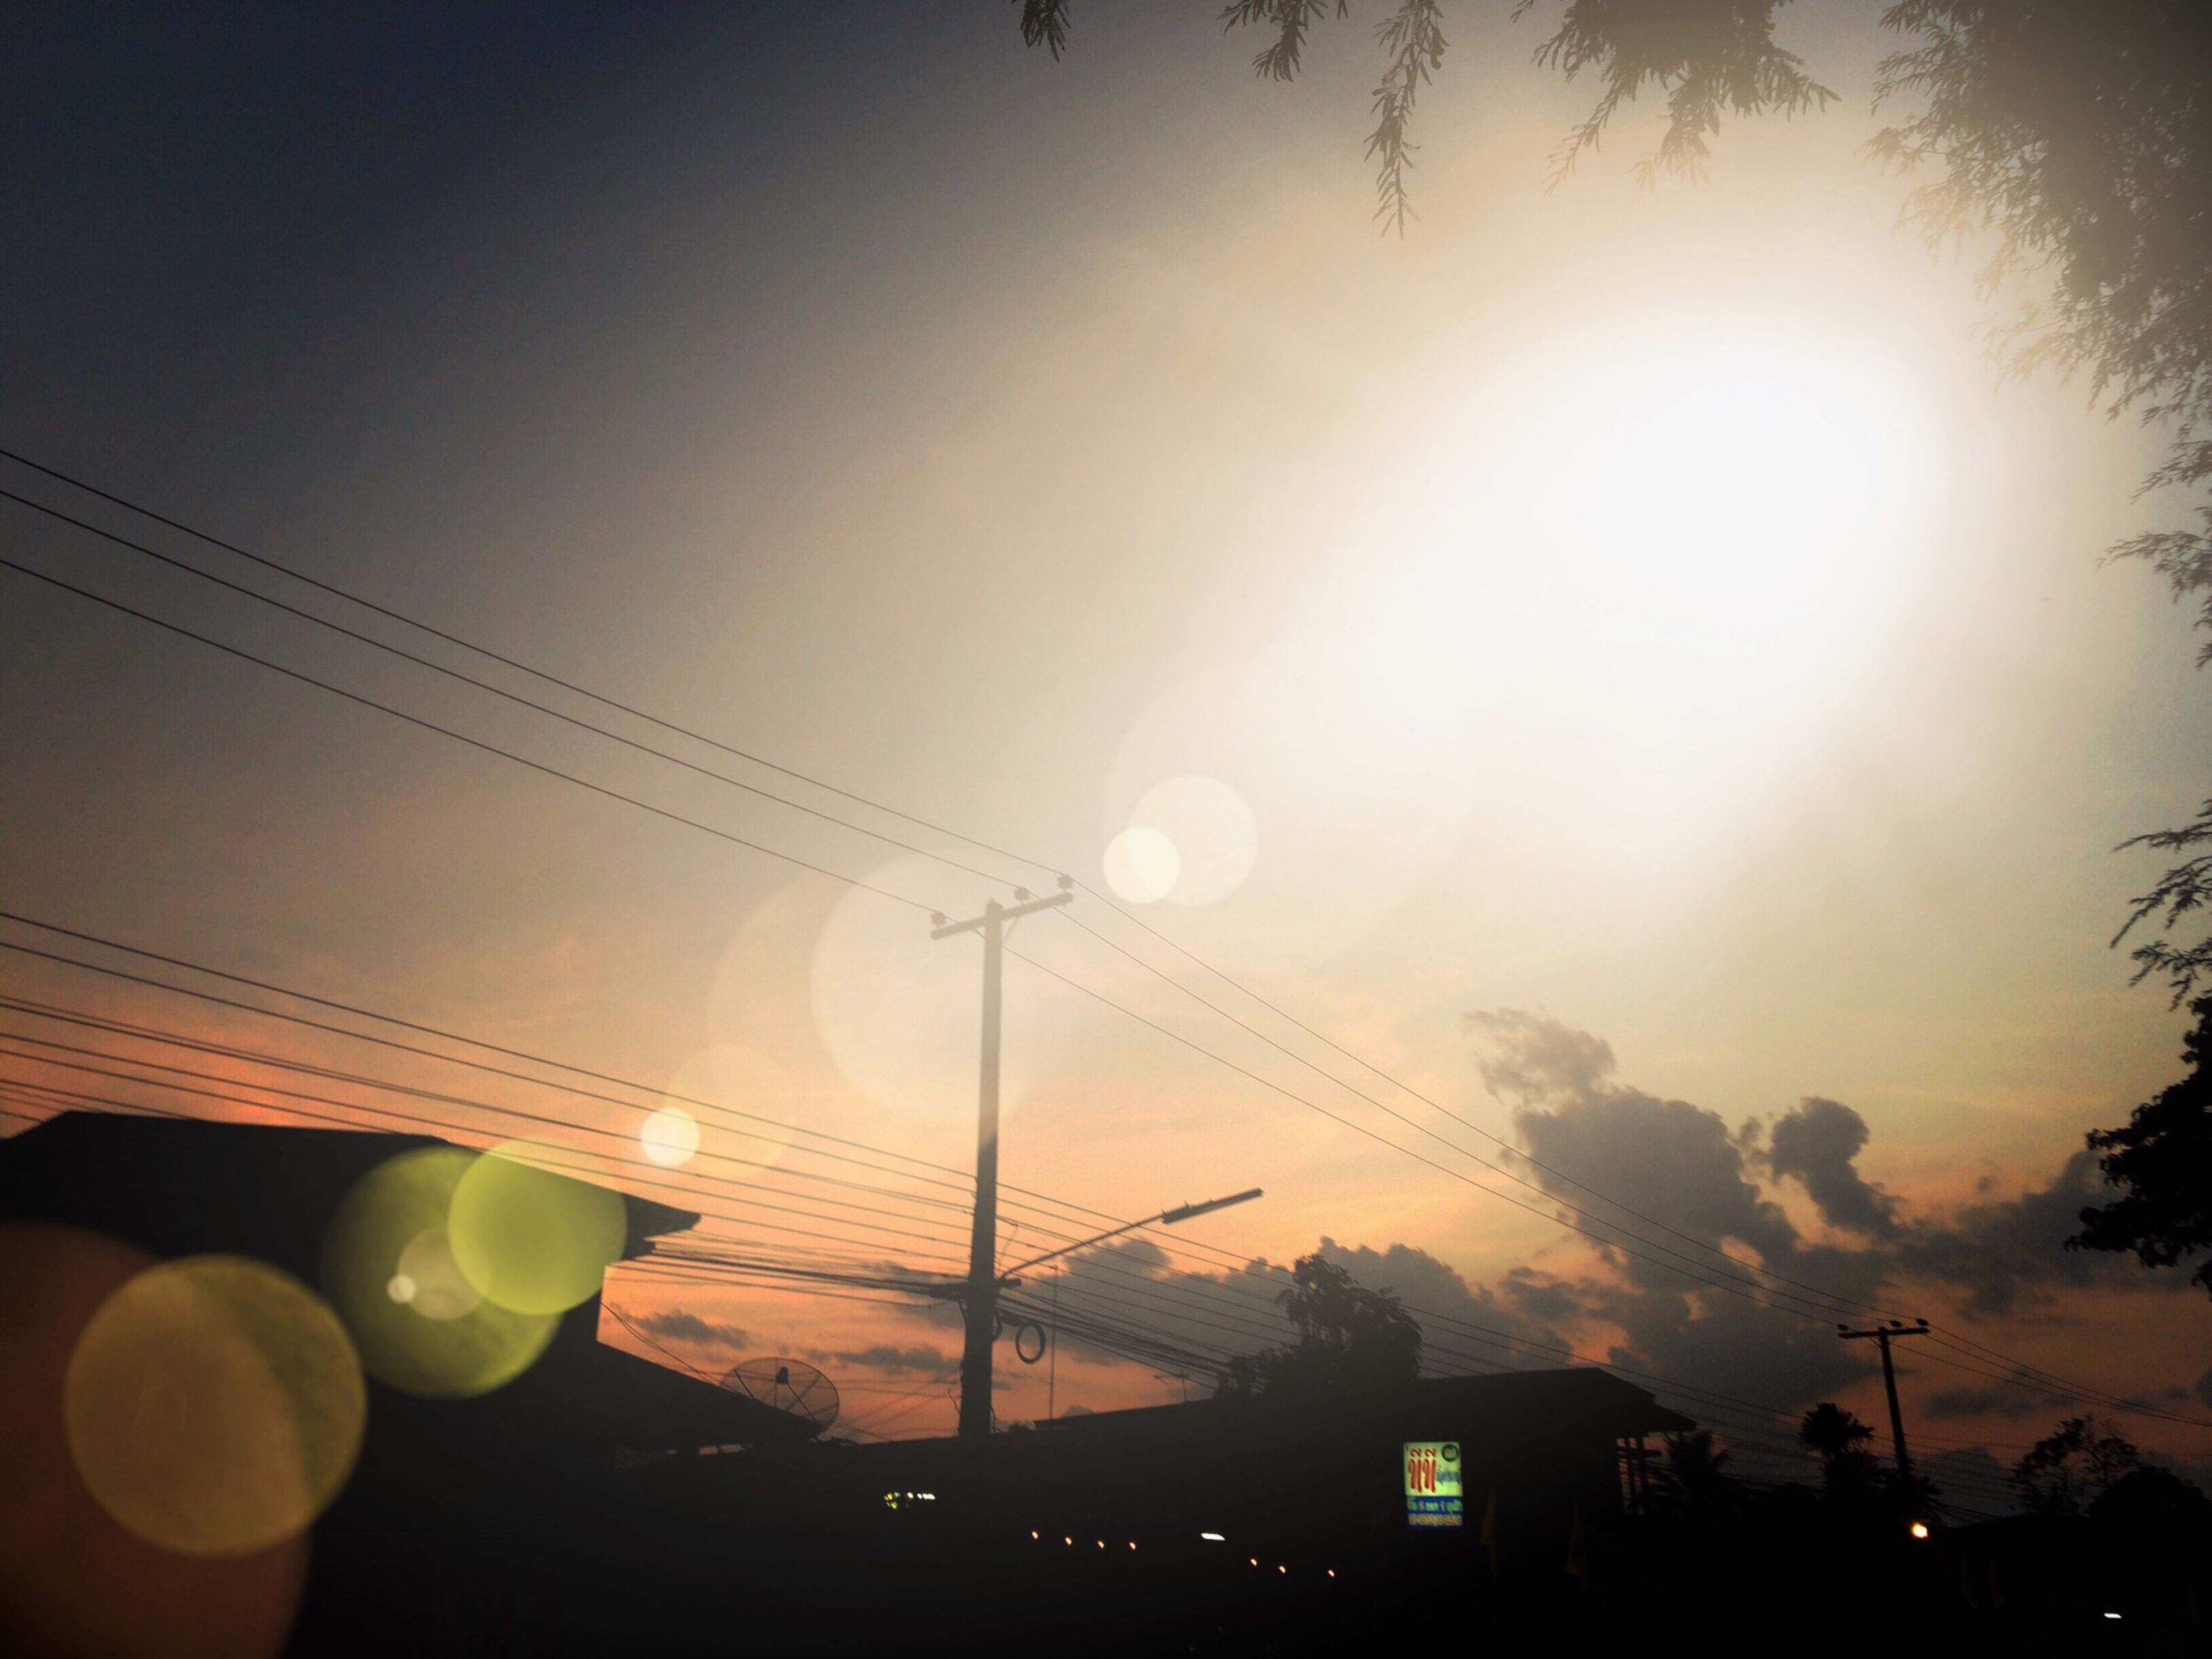 sun, low angle view, electricity, power line, built structure, building exterior, architecture, electricity pylon, lens flare, sky, silhouette, sunset, street light, sunbeam, fuel and power generation, sunlight, power supply, connection, cable, technology